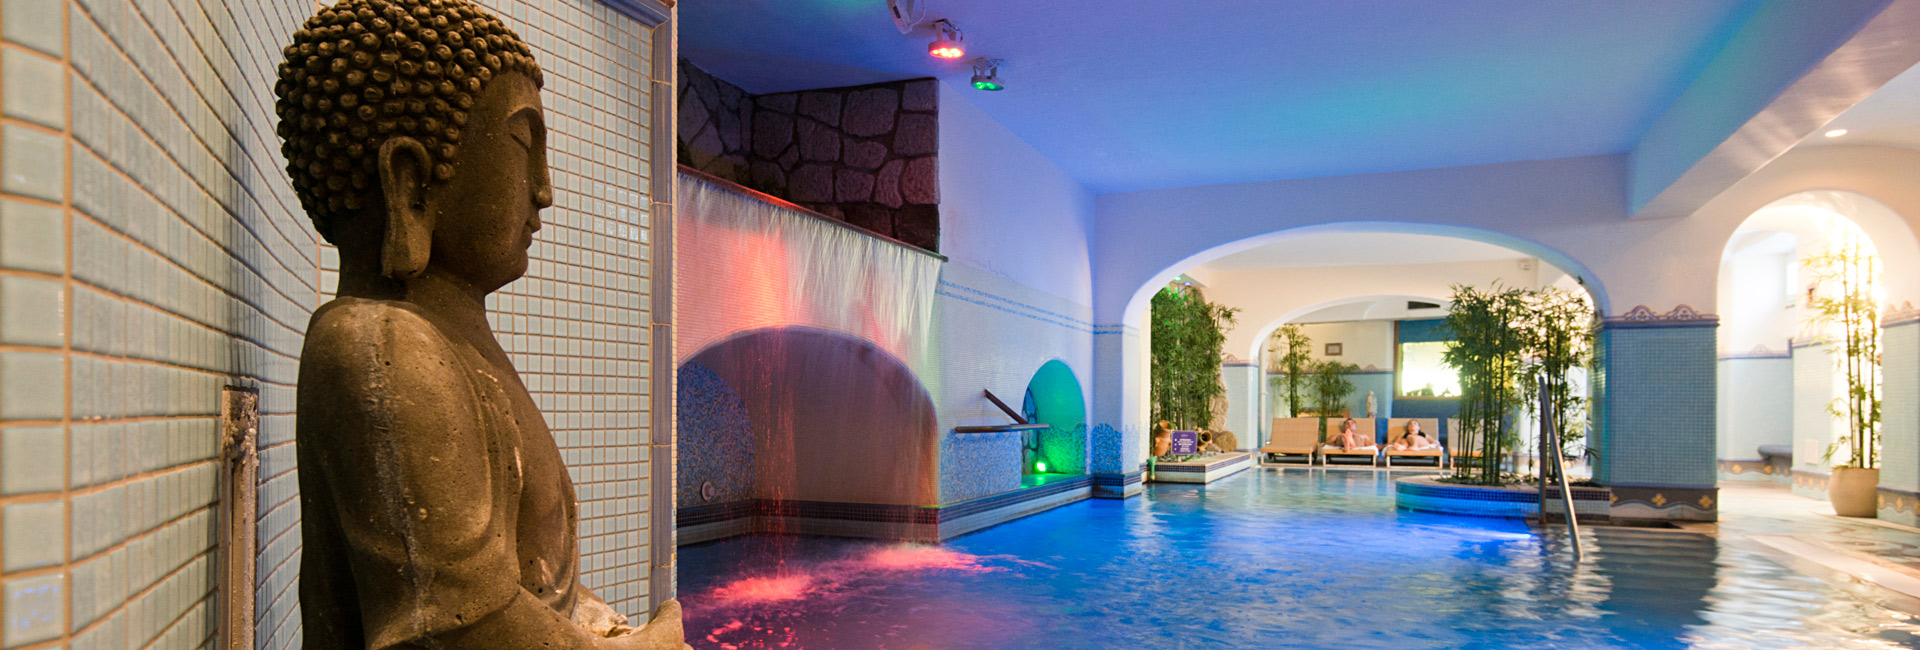 Sorriso-Thermae-Resort_IschiaWellness-2